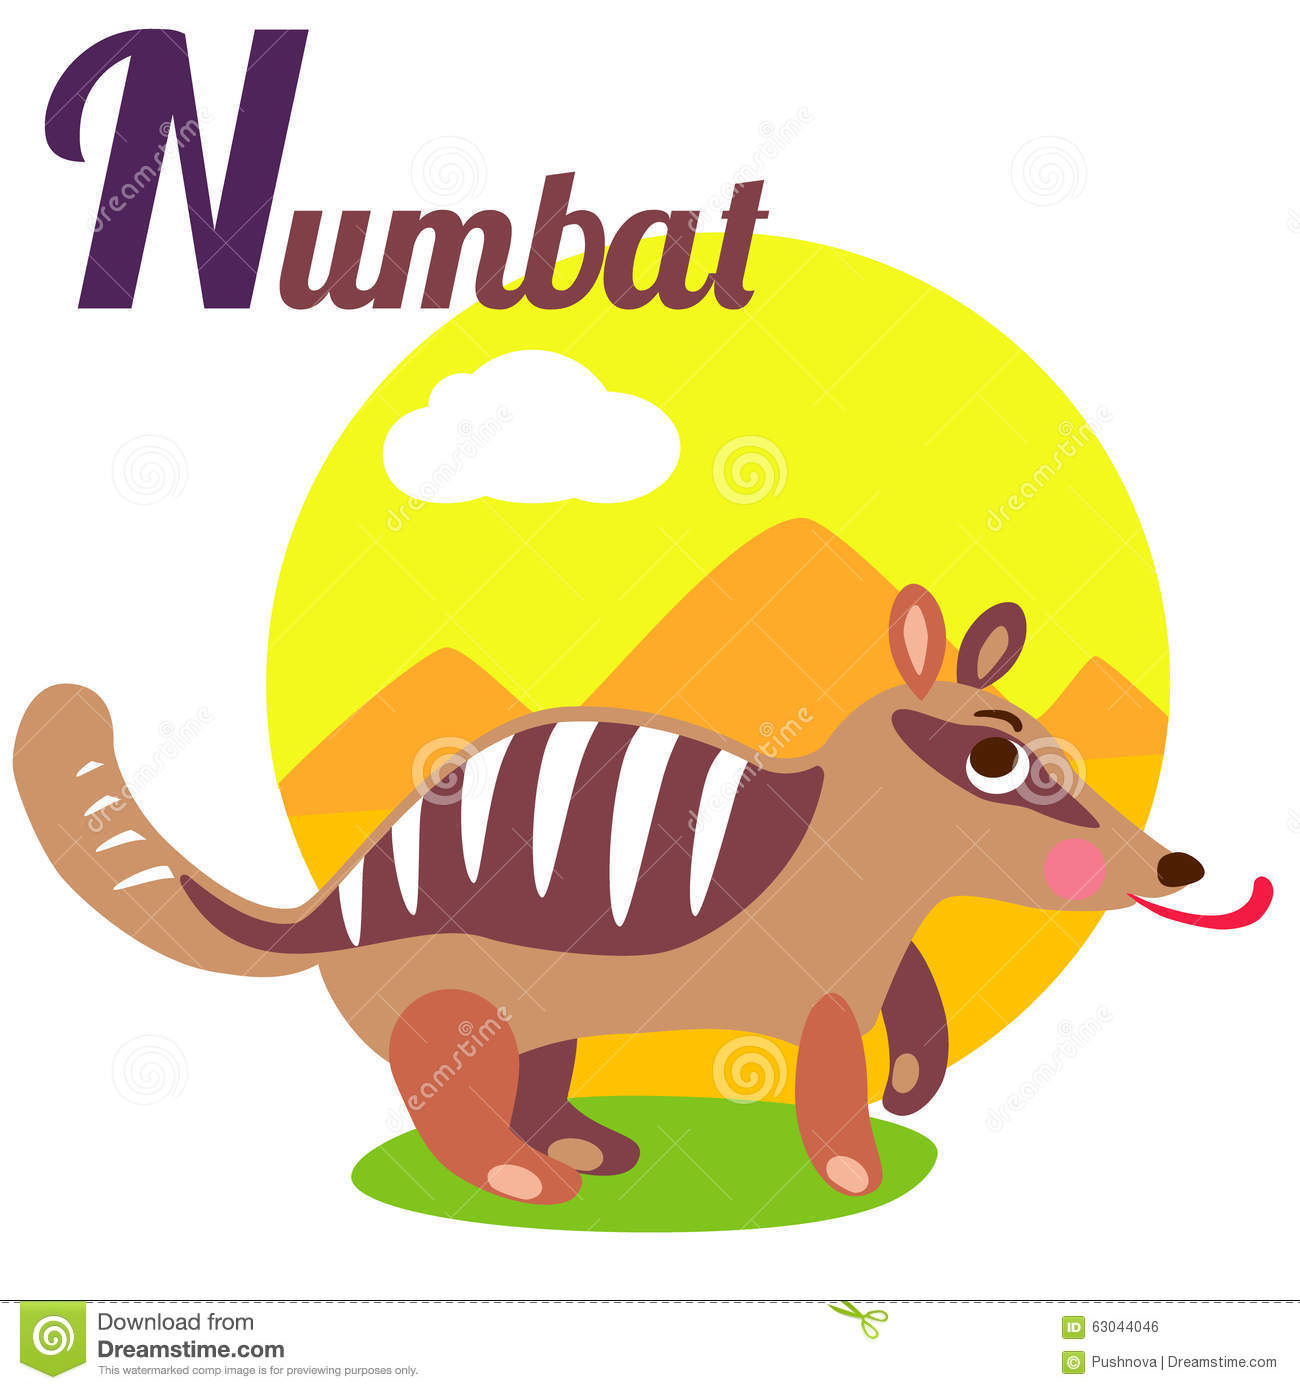 Image of: Abc Cute Animal Alphabet For Abc Book Vector Illustration Of Cartoon Numbat Letter For The Numbat Dreamstimecom Numbat Stock Vector Illustration Of Nature Latin Poster 63044046